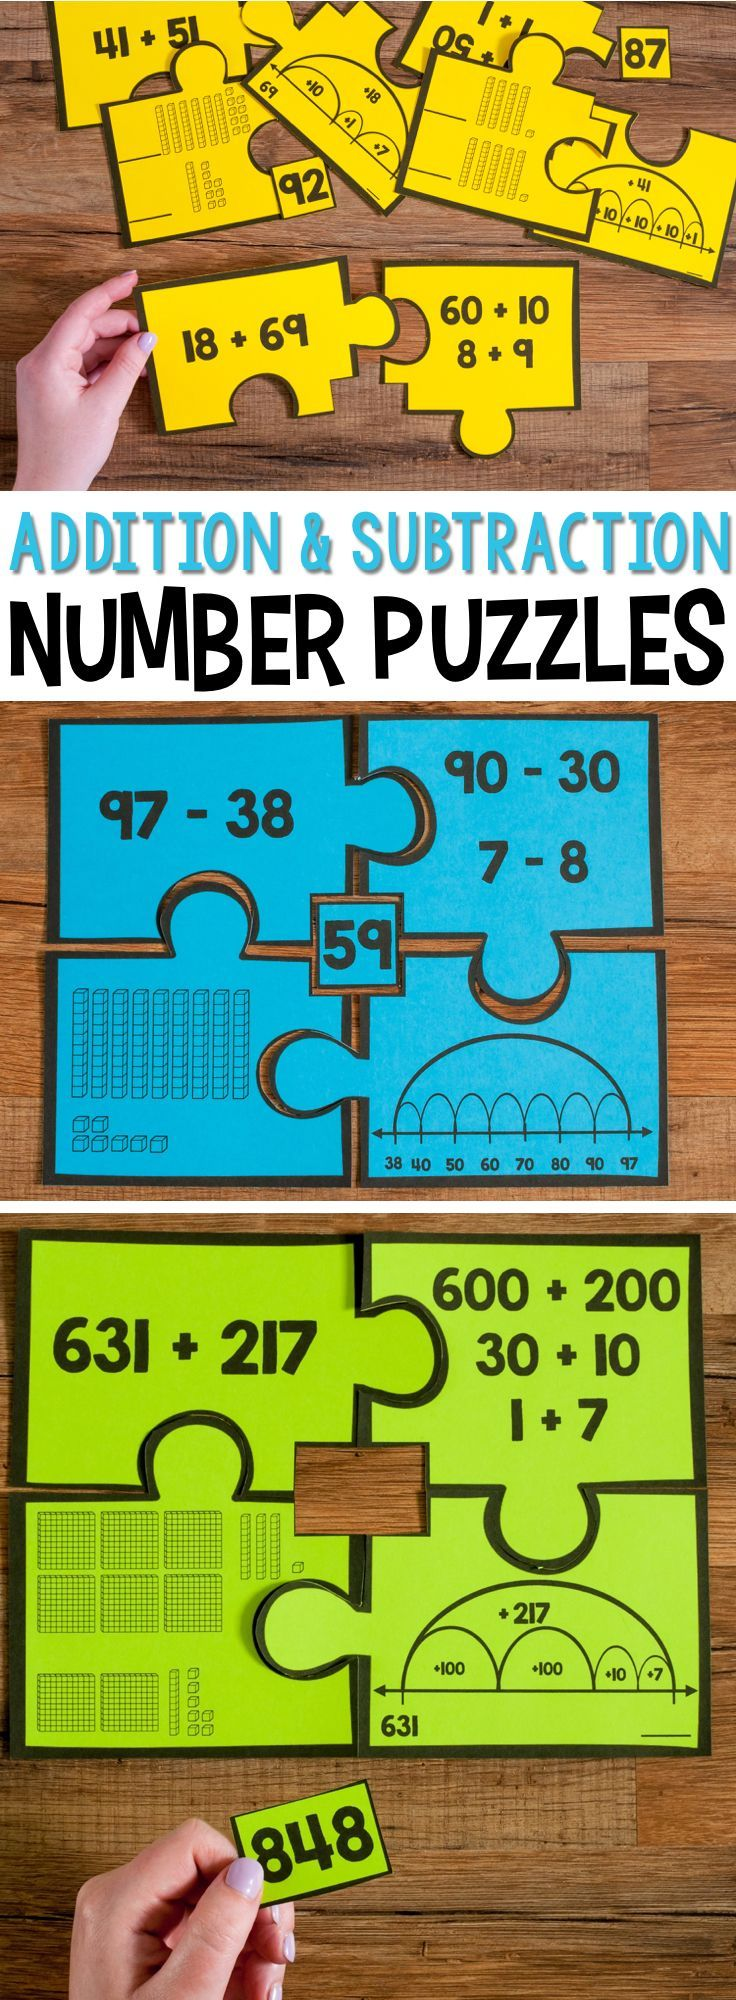 260 best maths activities images on Pinterest | Learning, Elementary ...